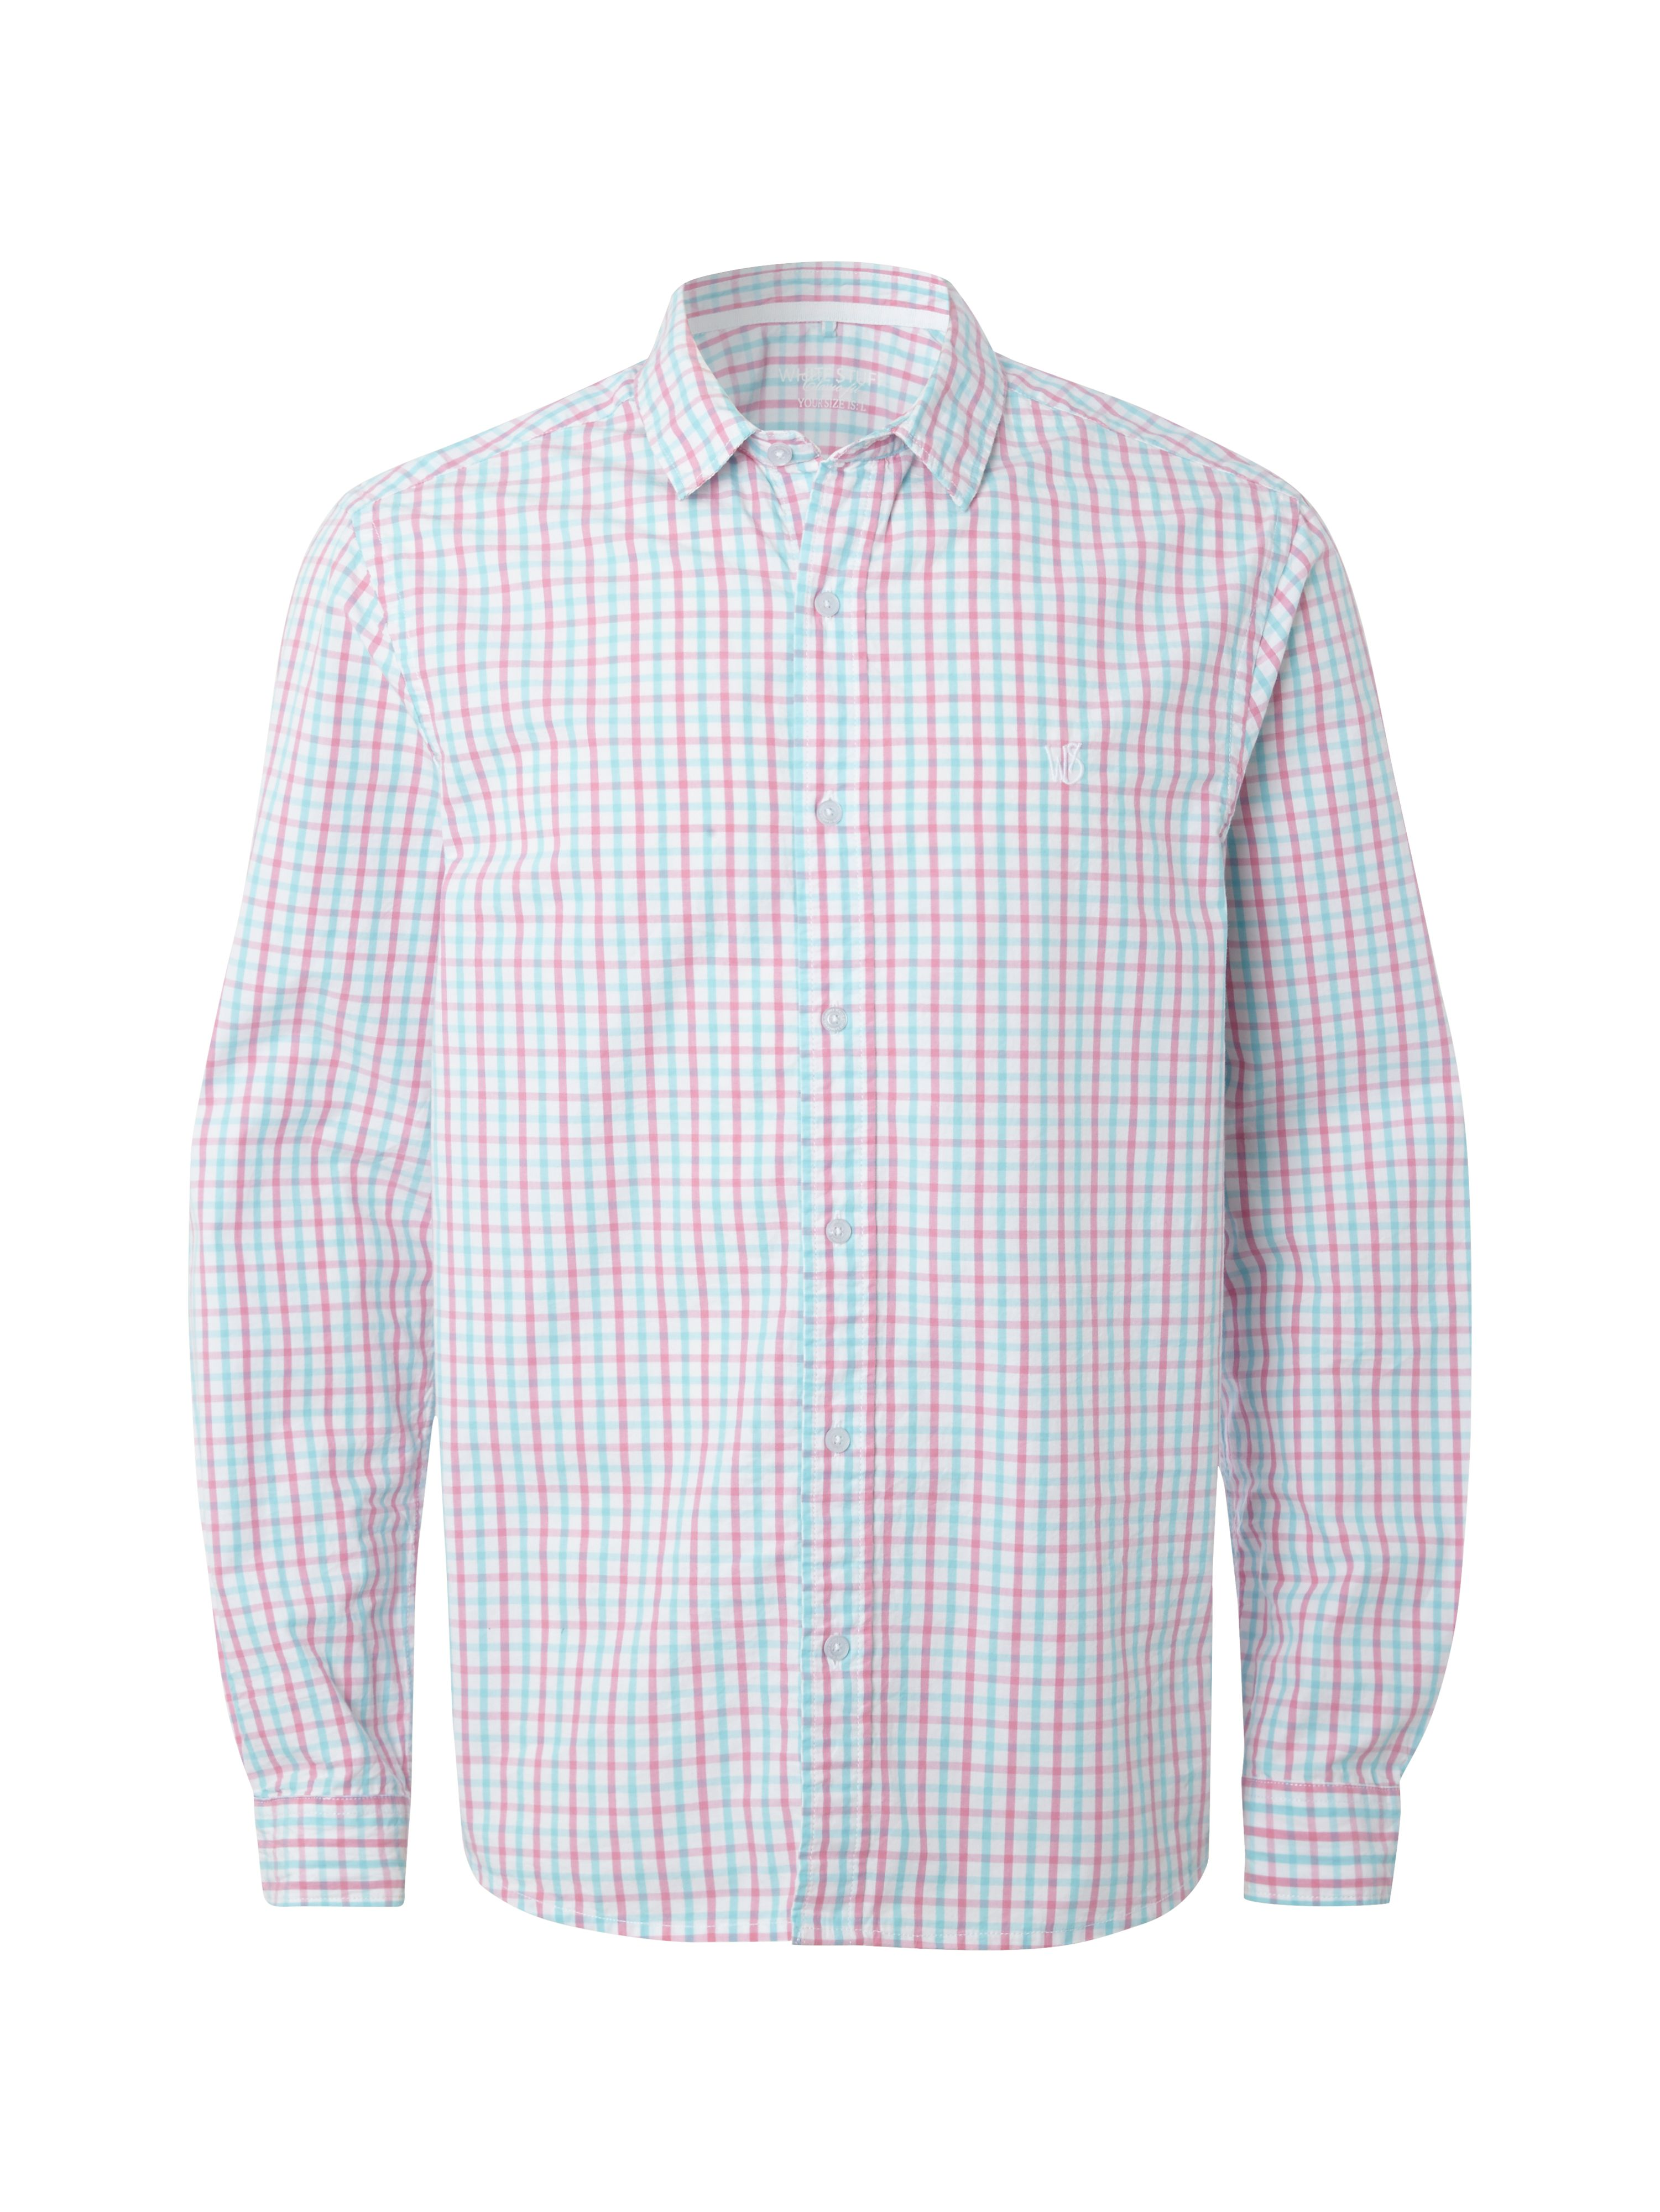 Heartland small check long sleeve shirt